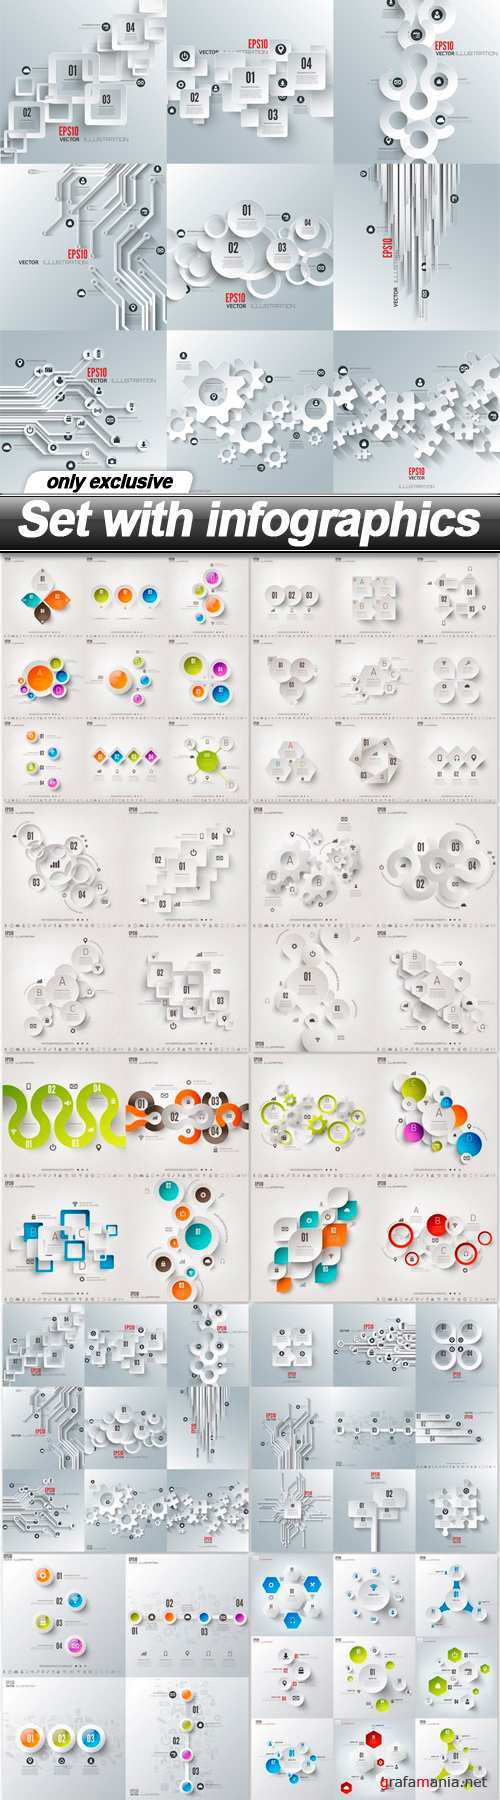 Set with infographics - 10 EPS